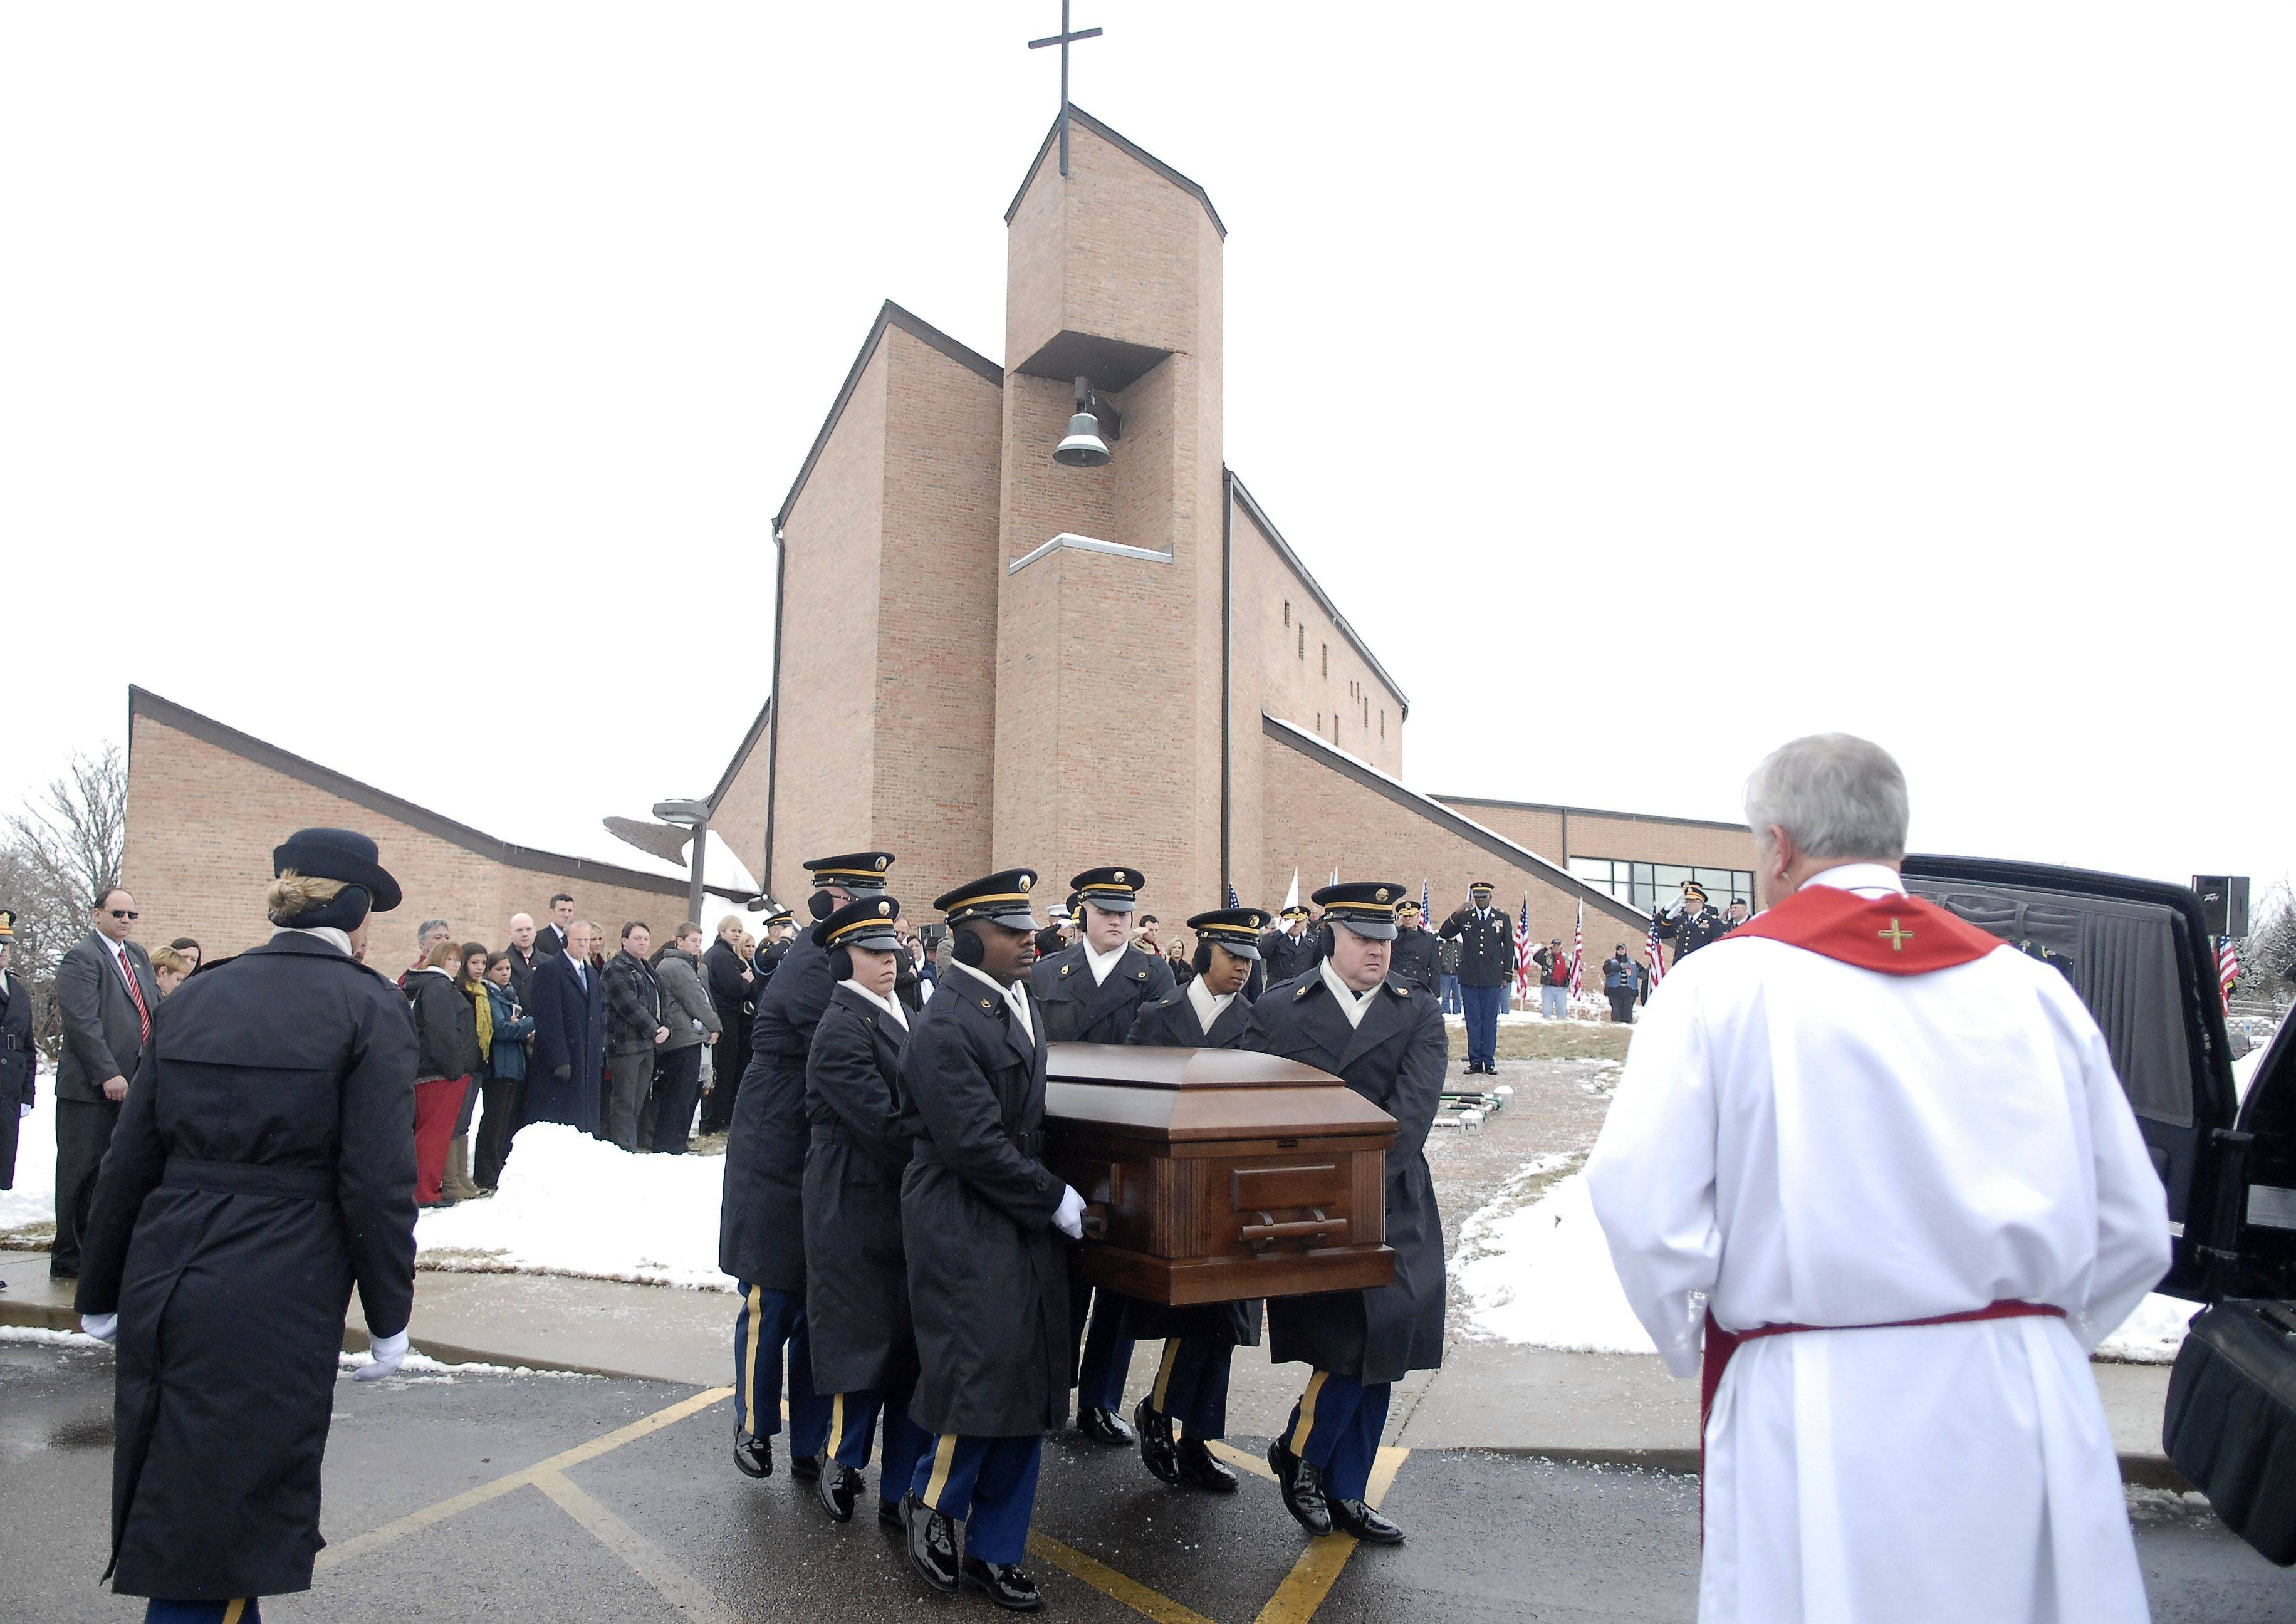 Family, two governors eulogize fallen N. Aurora soldier